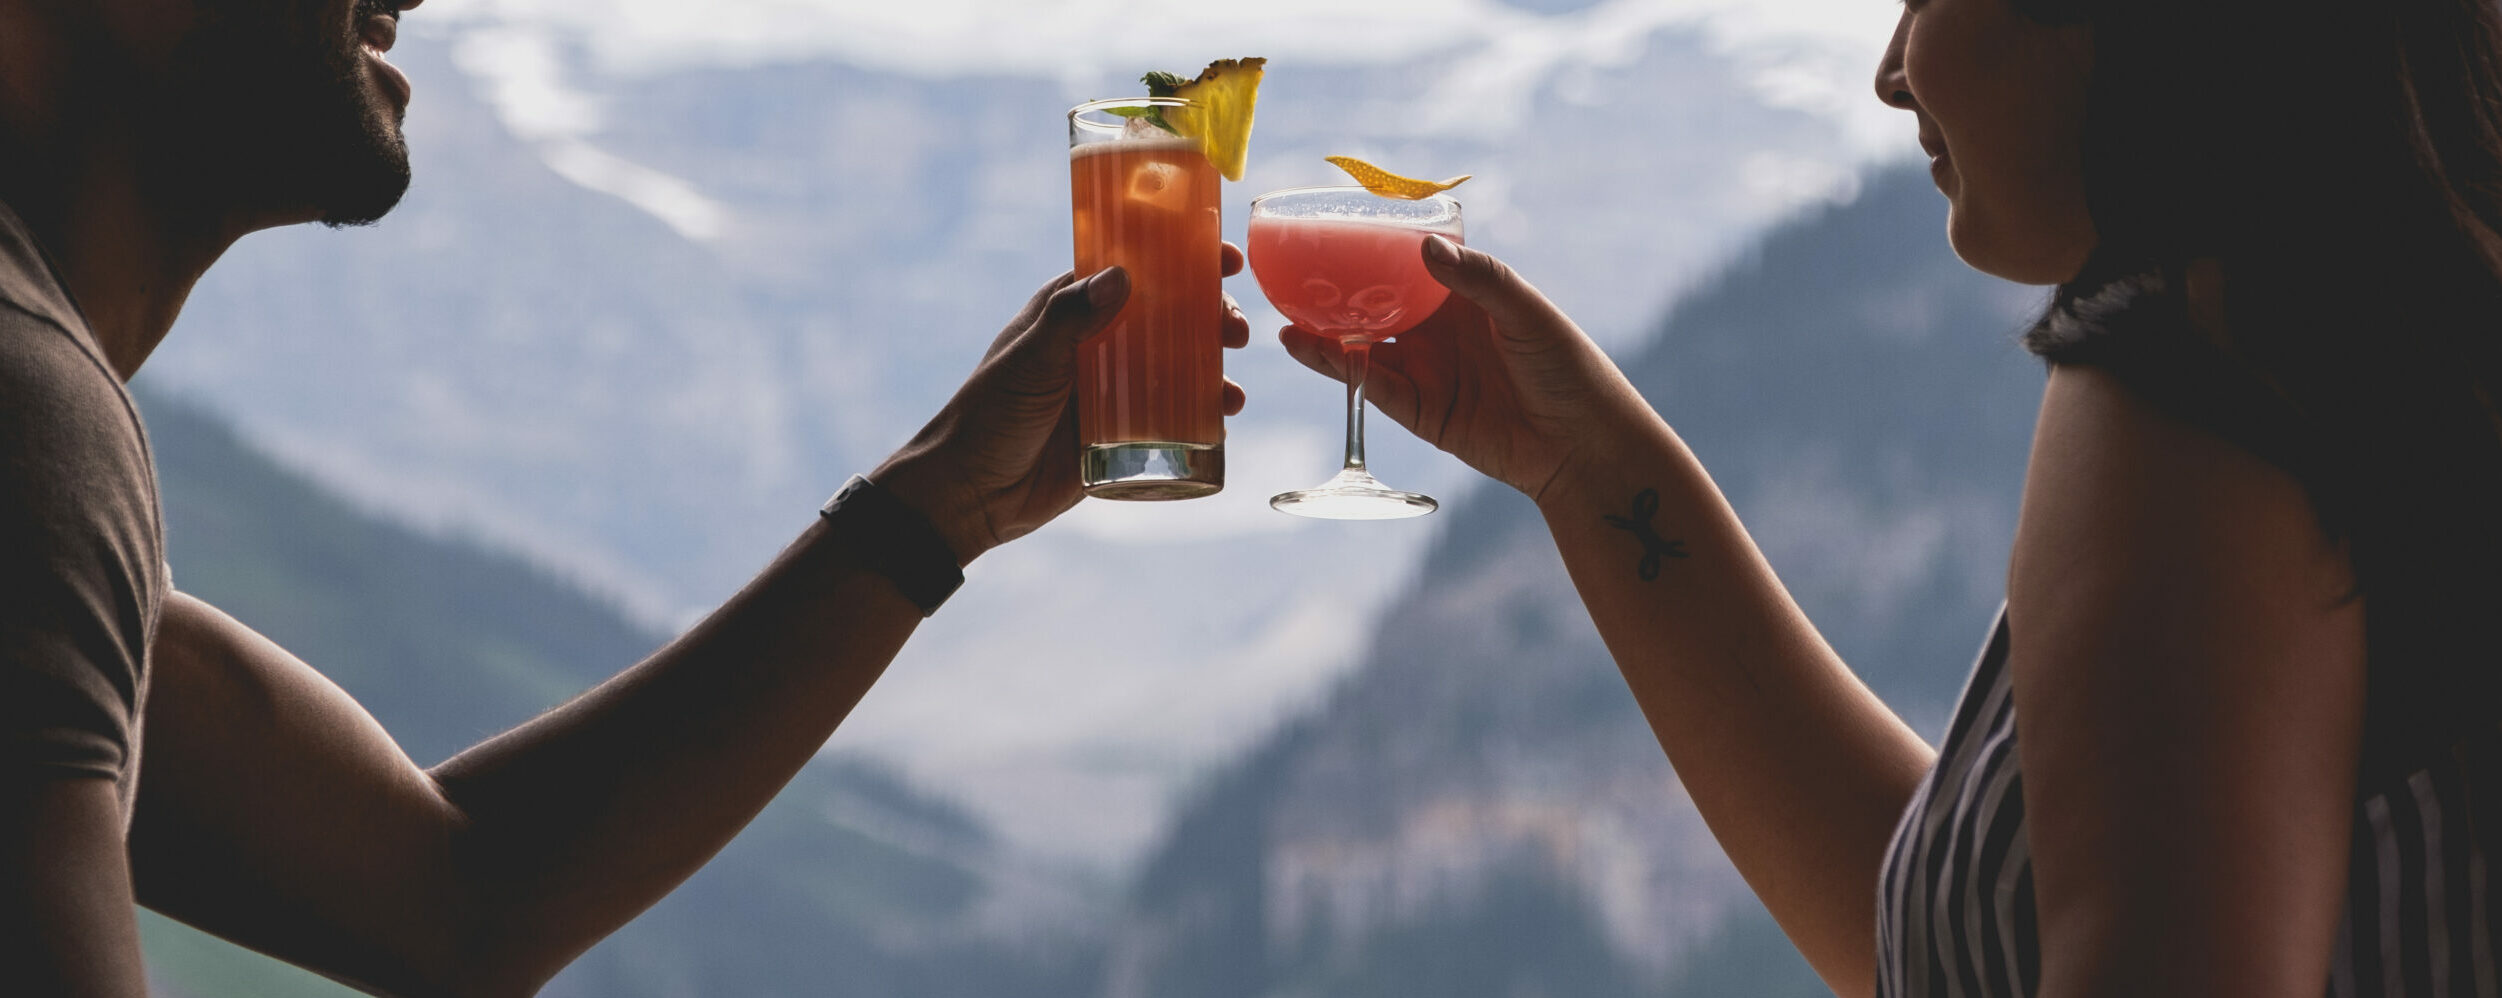 Patio drinks in Banff National Park